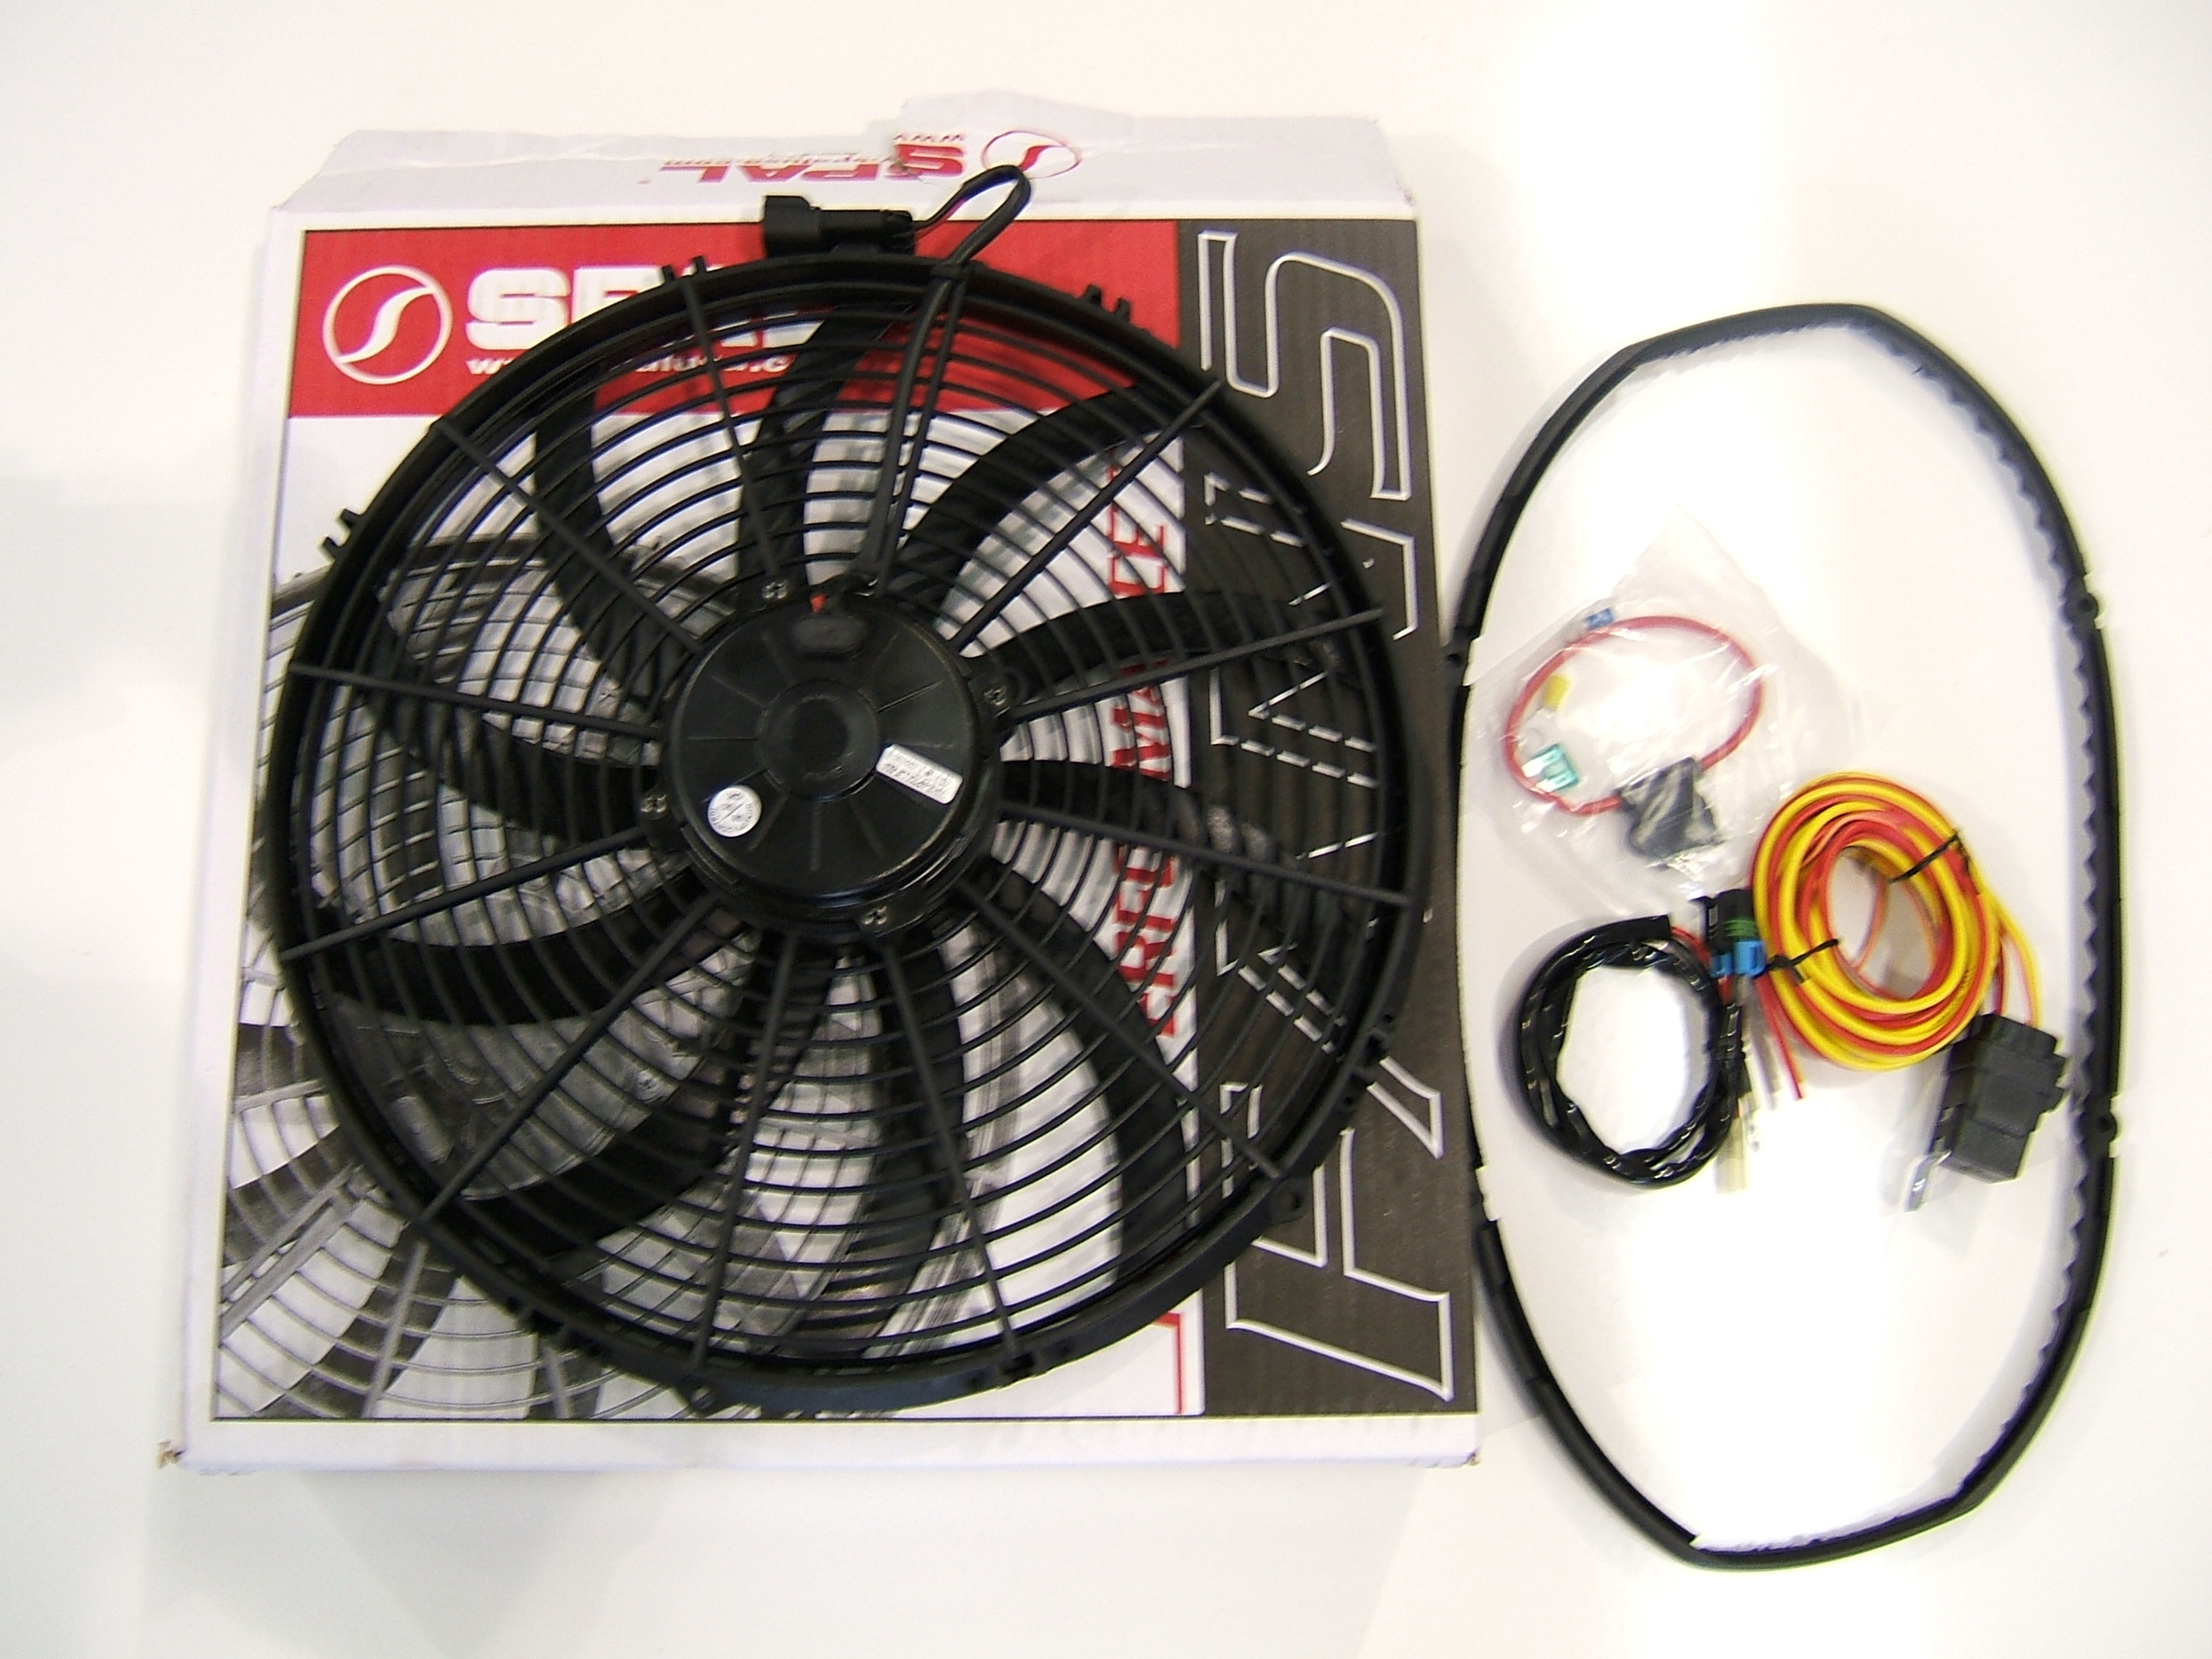 Z1 Motorsports SPAL electric fan setups flow over 3300 m3 / hr at static  pressure. An electrically driven fan reduces parasitic losses associated  with ...